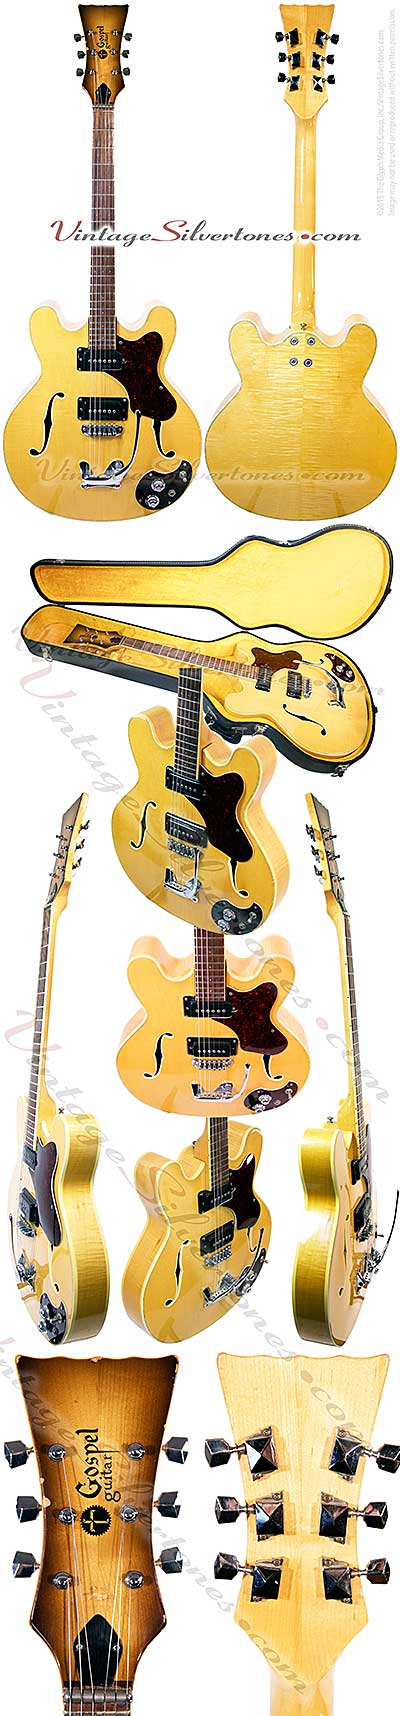 Mosrite Gospel, blond natural finish, 2pu, double cutaway, hollow body, Mosrite tailpiece, 1967, California